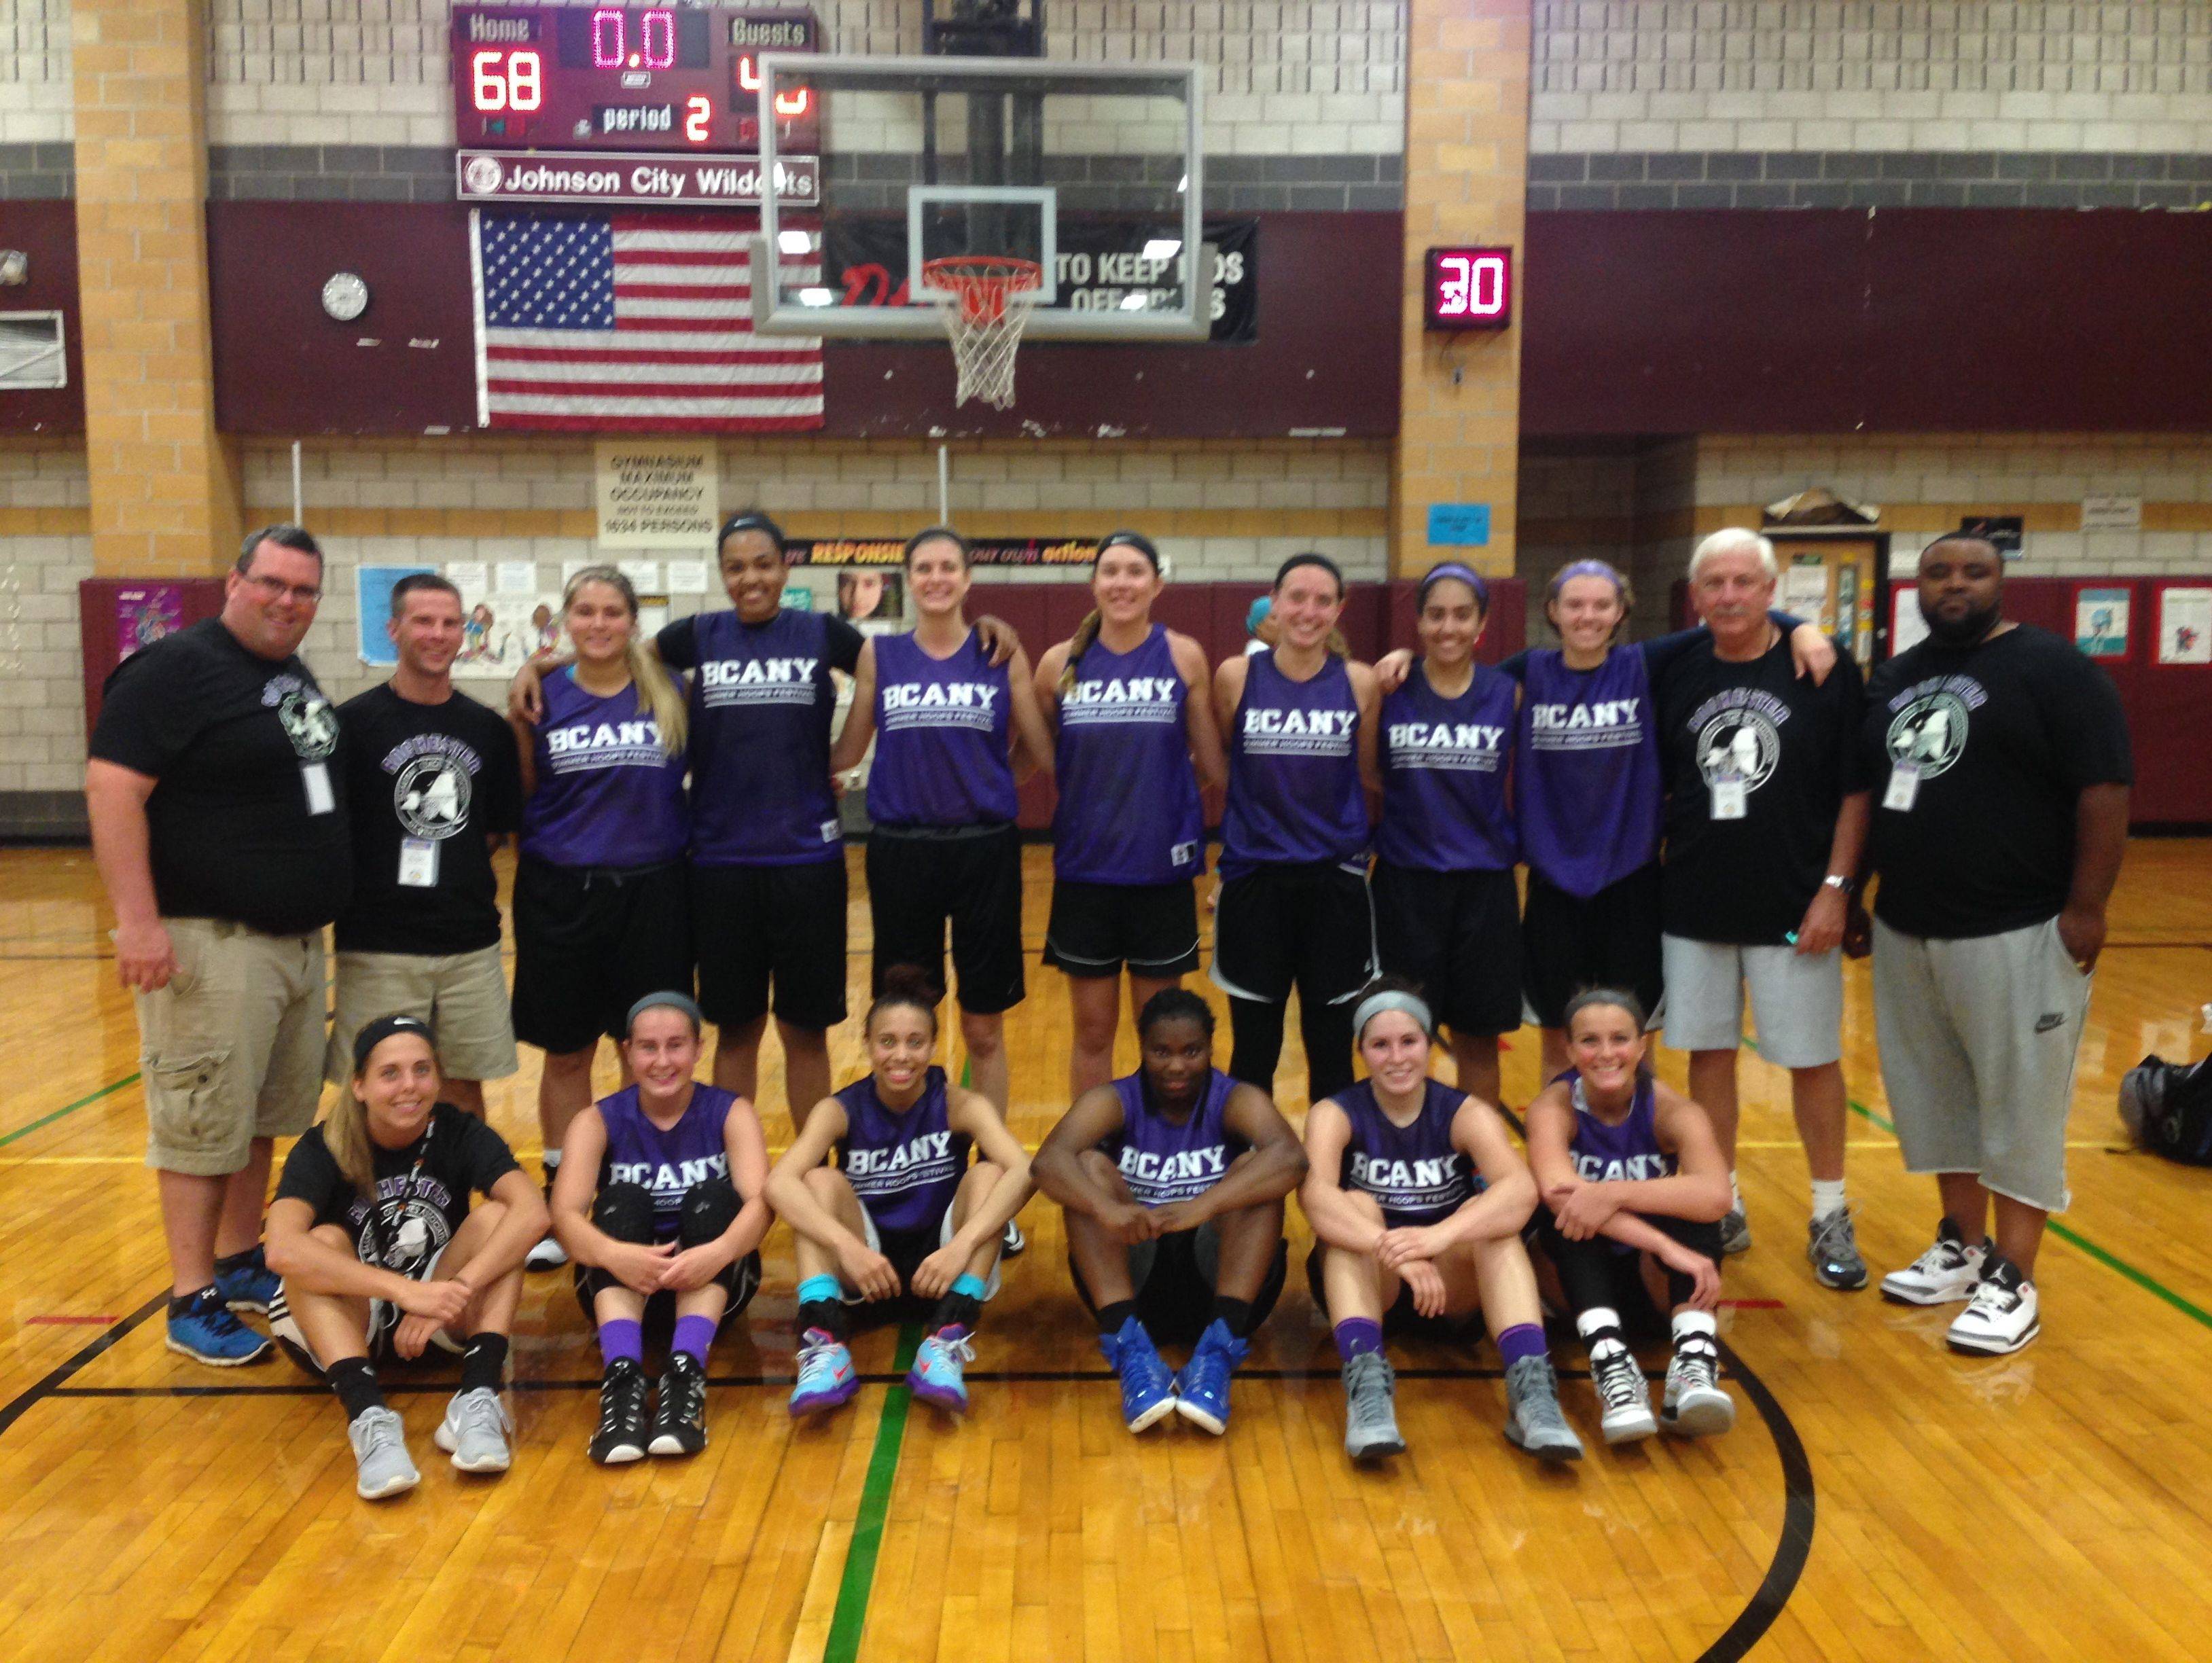 The 2015 Rochester girls basketball team, silver-medalist at Basketball Coaches Association of New York Summer Hoops Festival in Johnson City.